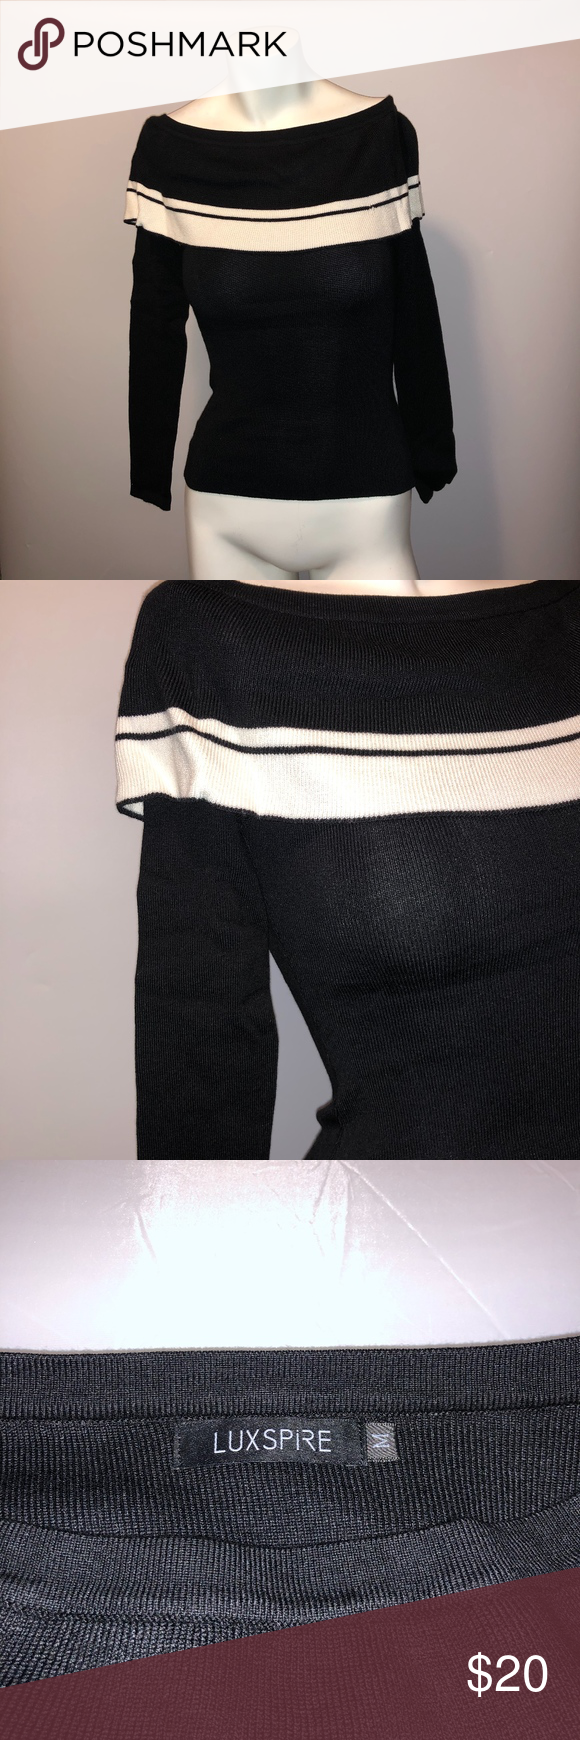 Luxspire Womens Black White Off Shoulder Sweater Luxspire Womens Black White Off Shoulder Sweater   NWOT  Size Large  Length -  18.5